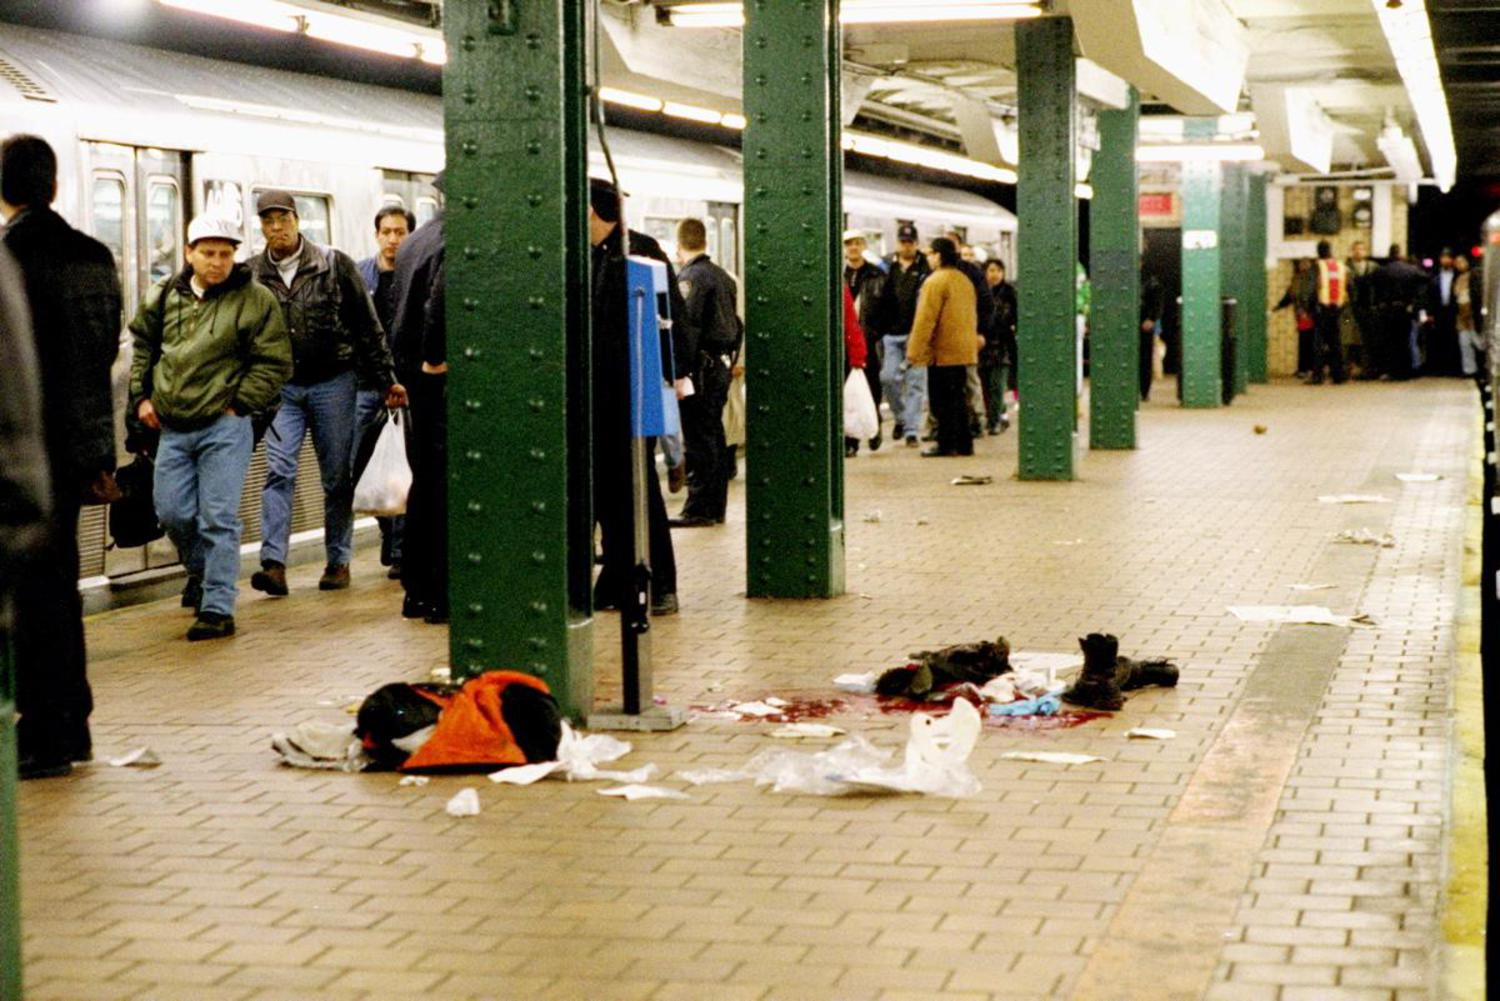 1990's: Subway riders walk by a horrific crime scene on the platform of the 125 St. station after an unidentified person was shot, leaving behind a pool of blood and clothing of the victim.